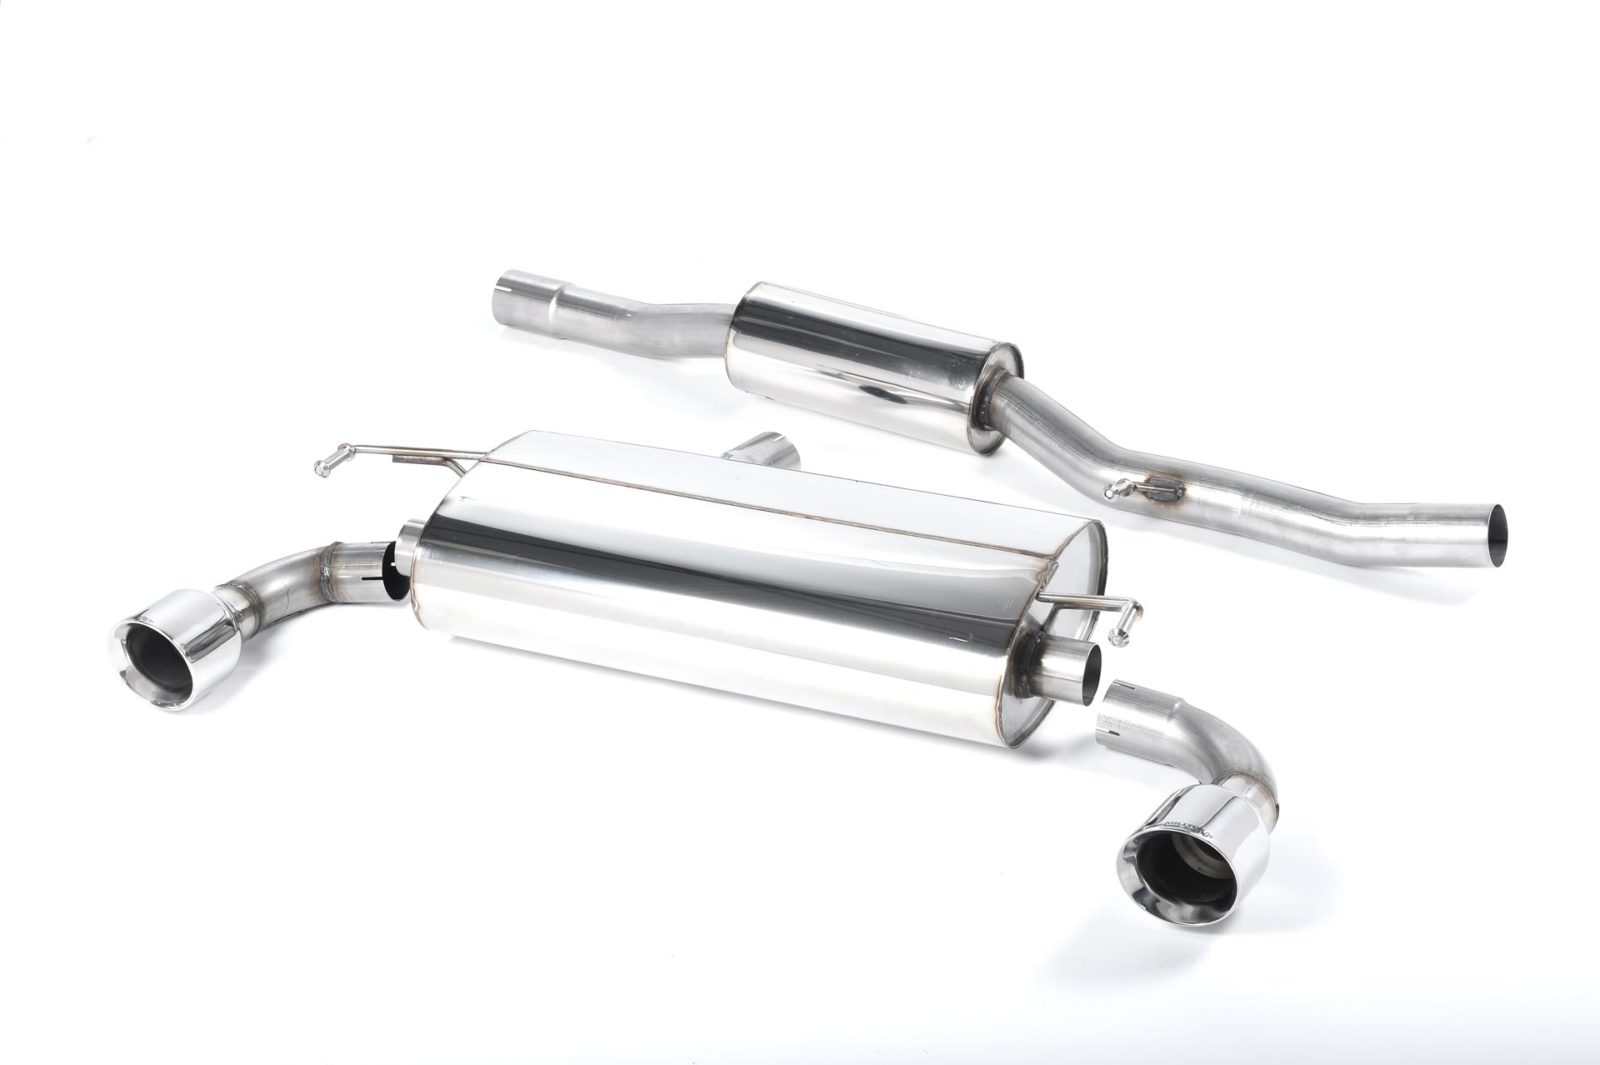 Milltek Vw Golf Mk4 R32 V6 4wd 02 05 Cat Back Exhaust